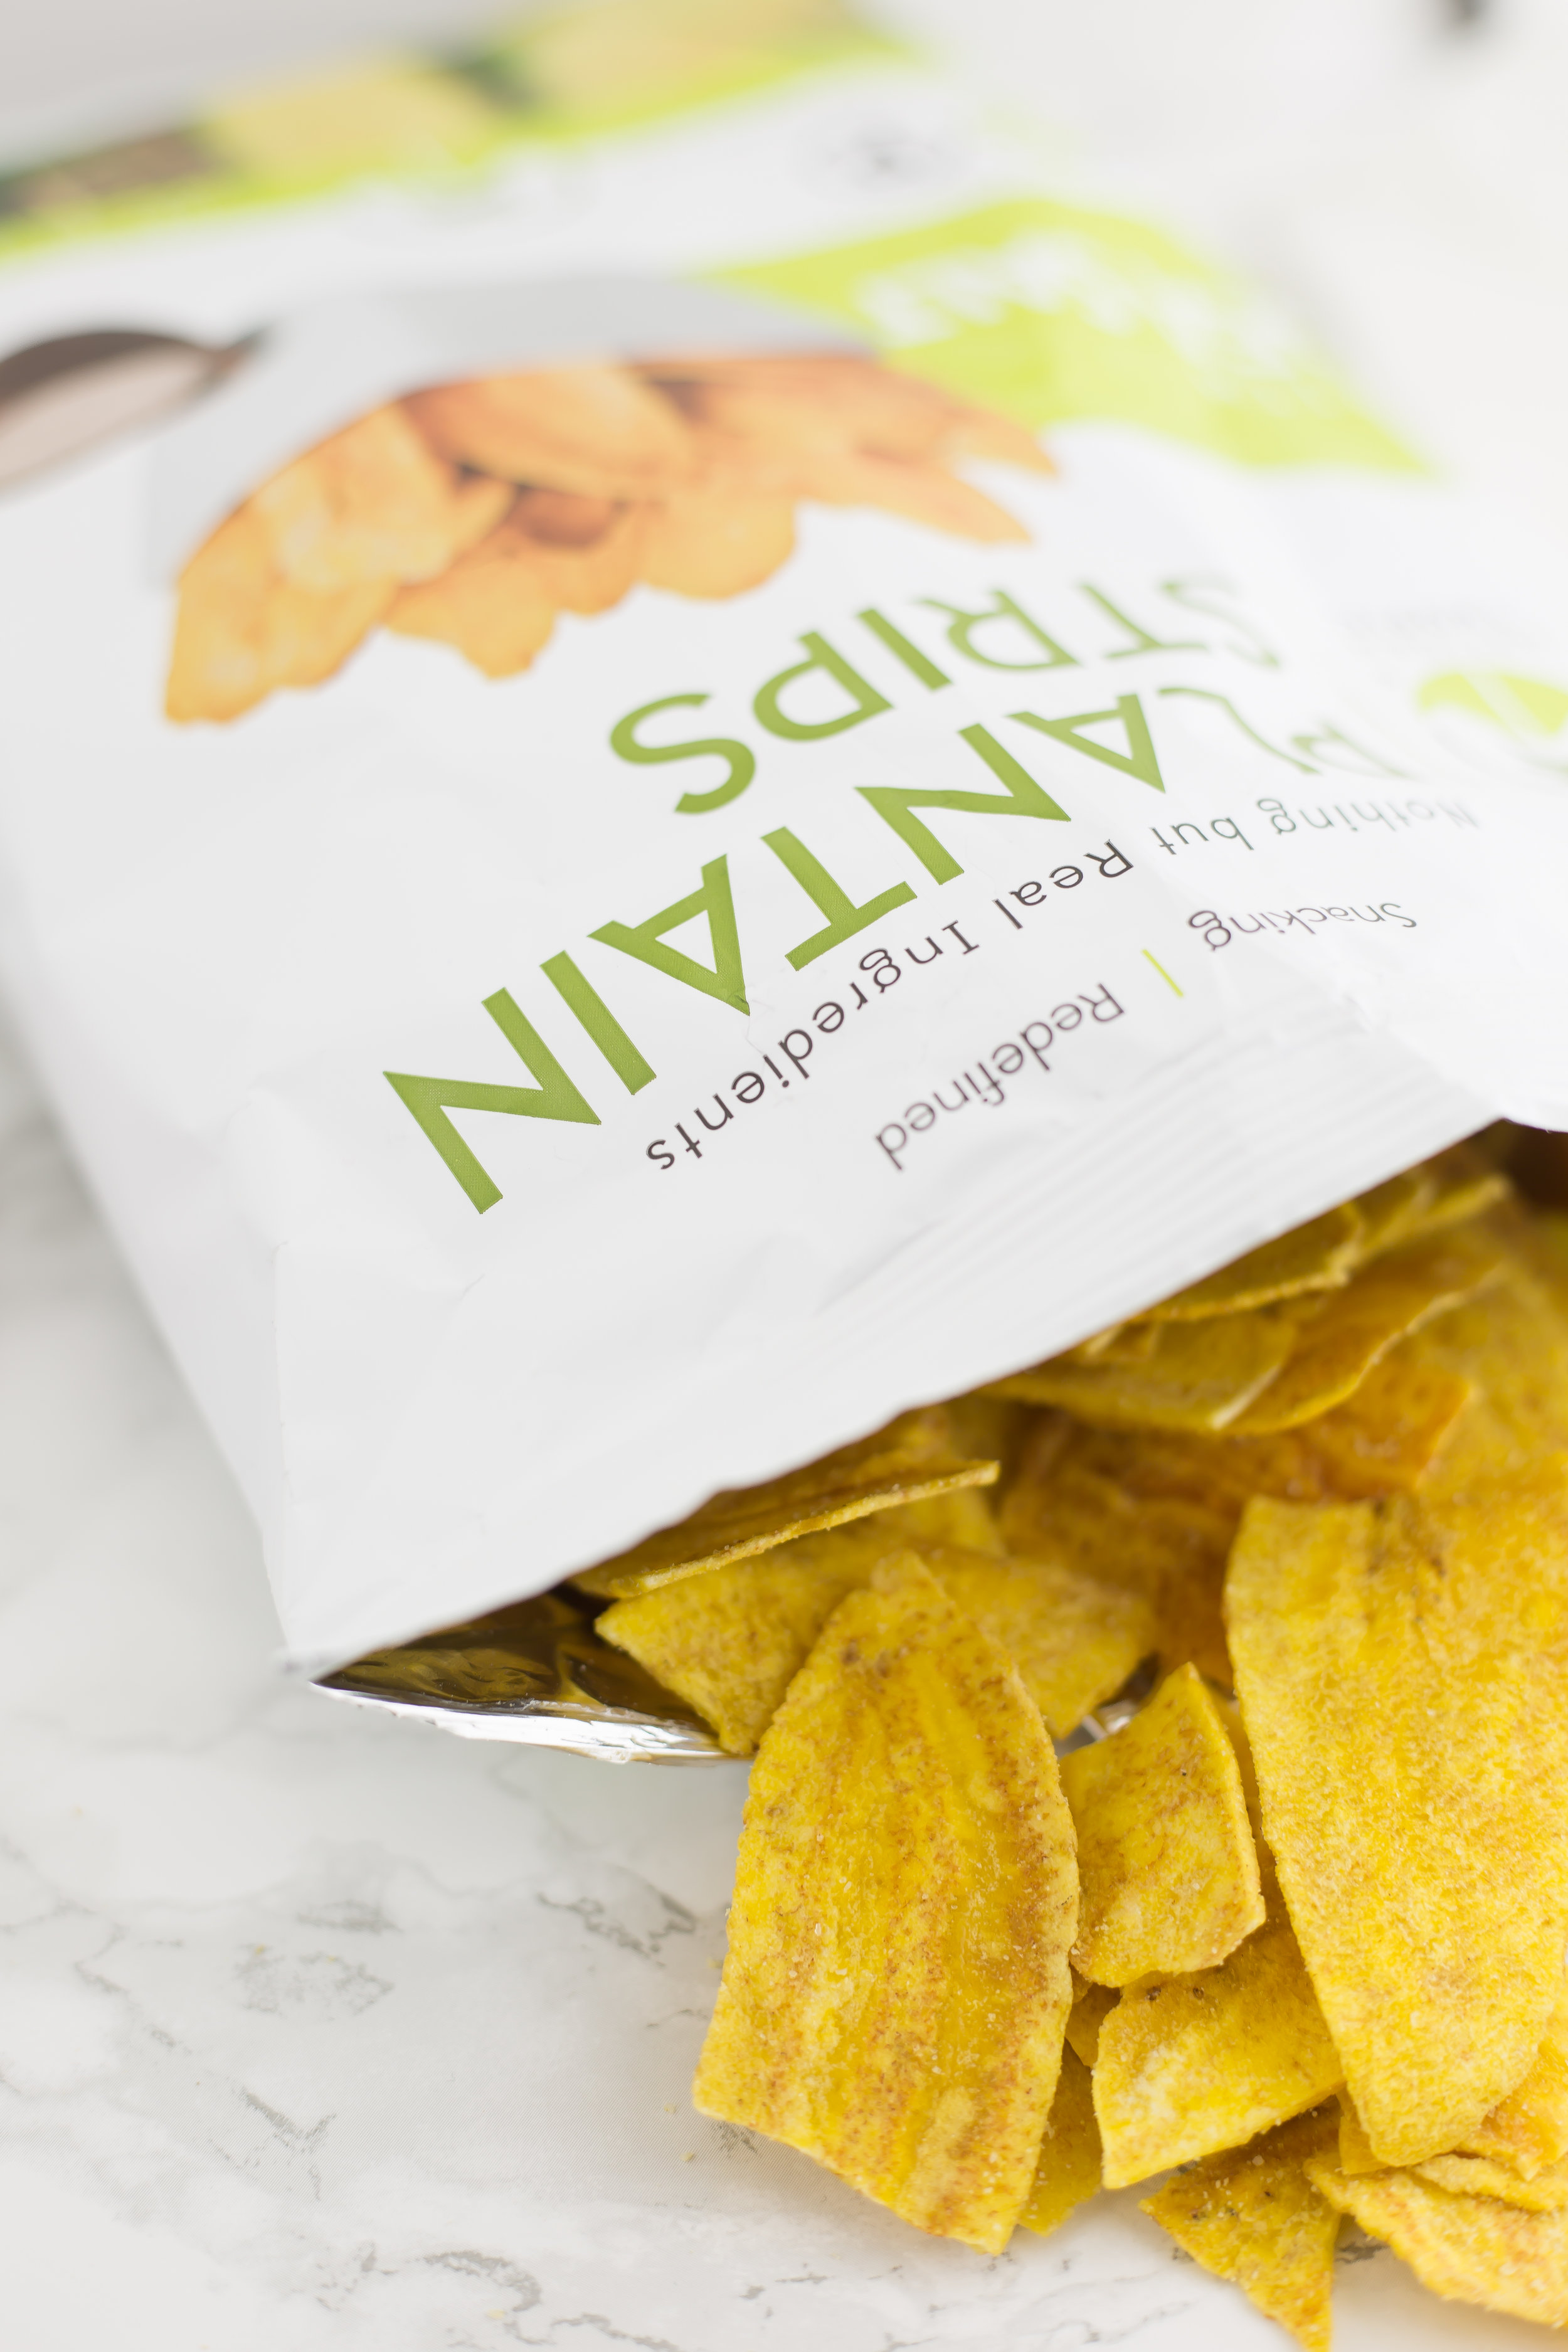 Plantain chips, healthy vegetables, benefits of plantains, plantain benefits, health benefits, artisan tropic, non-GMO